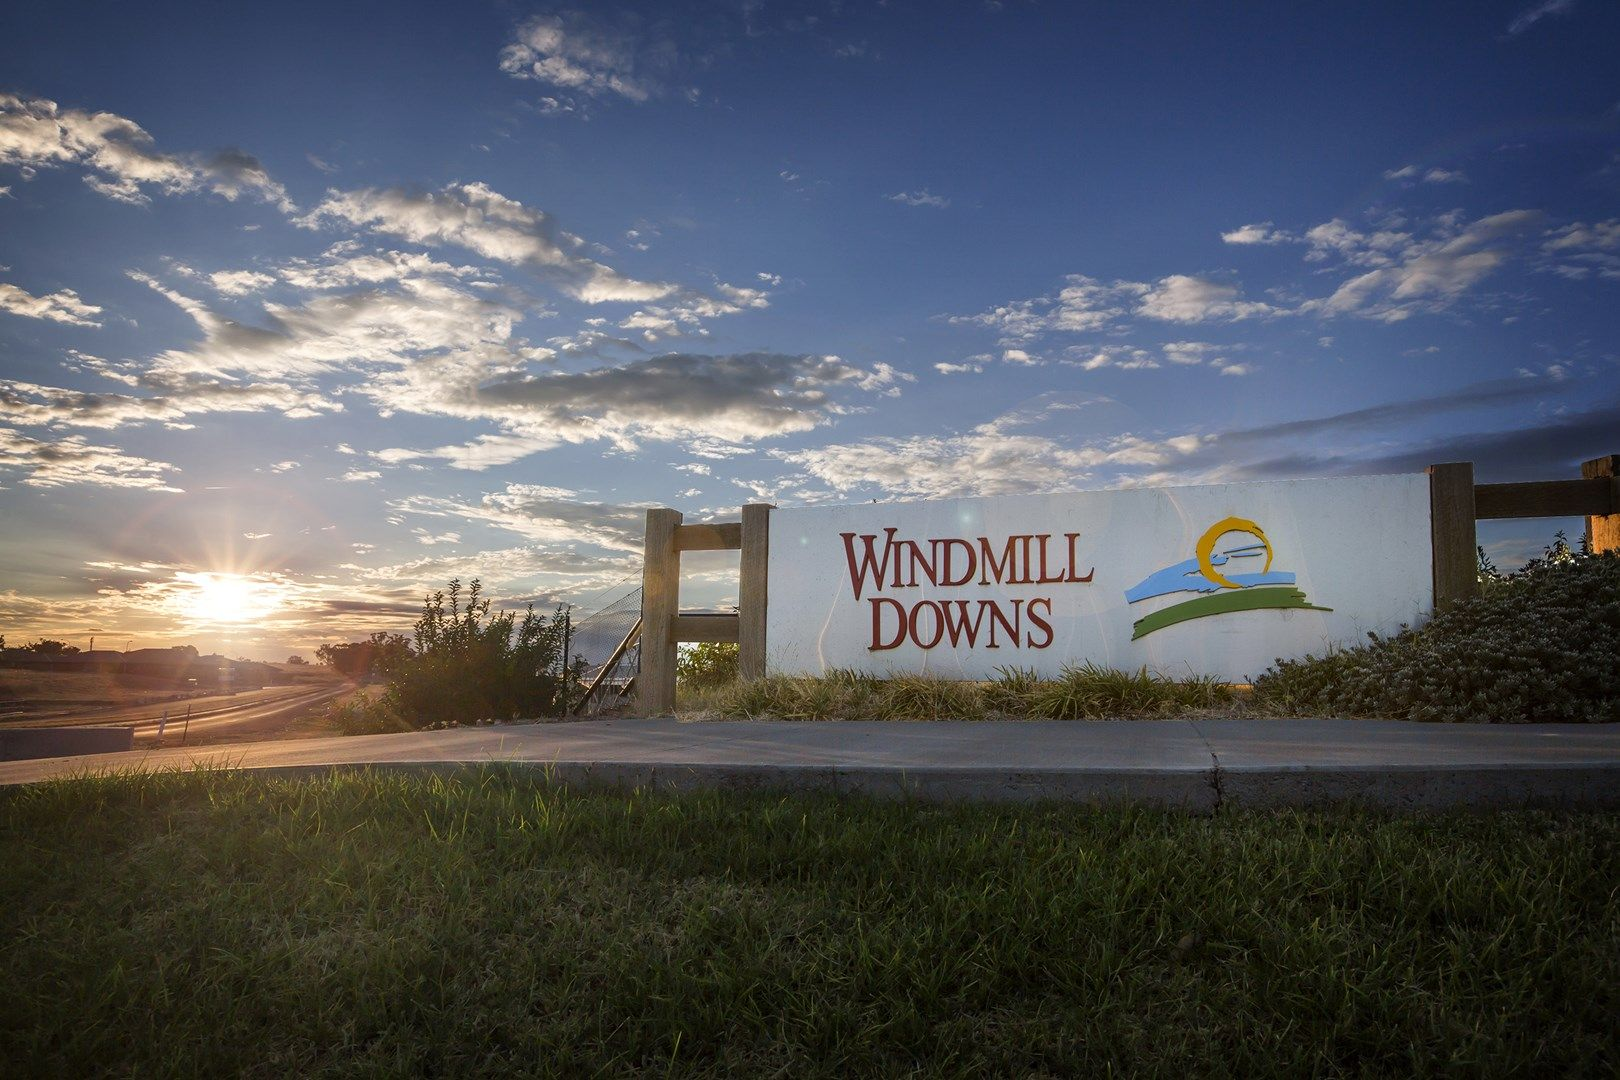 Lot 528 Heyman Close - Windmill Downs Estate, Tamworth NSW 2340, Image 0